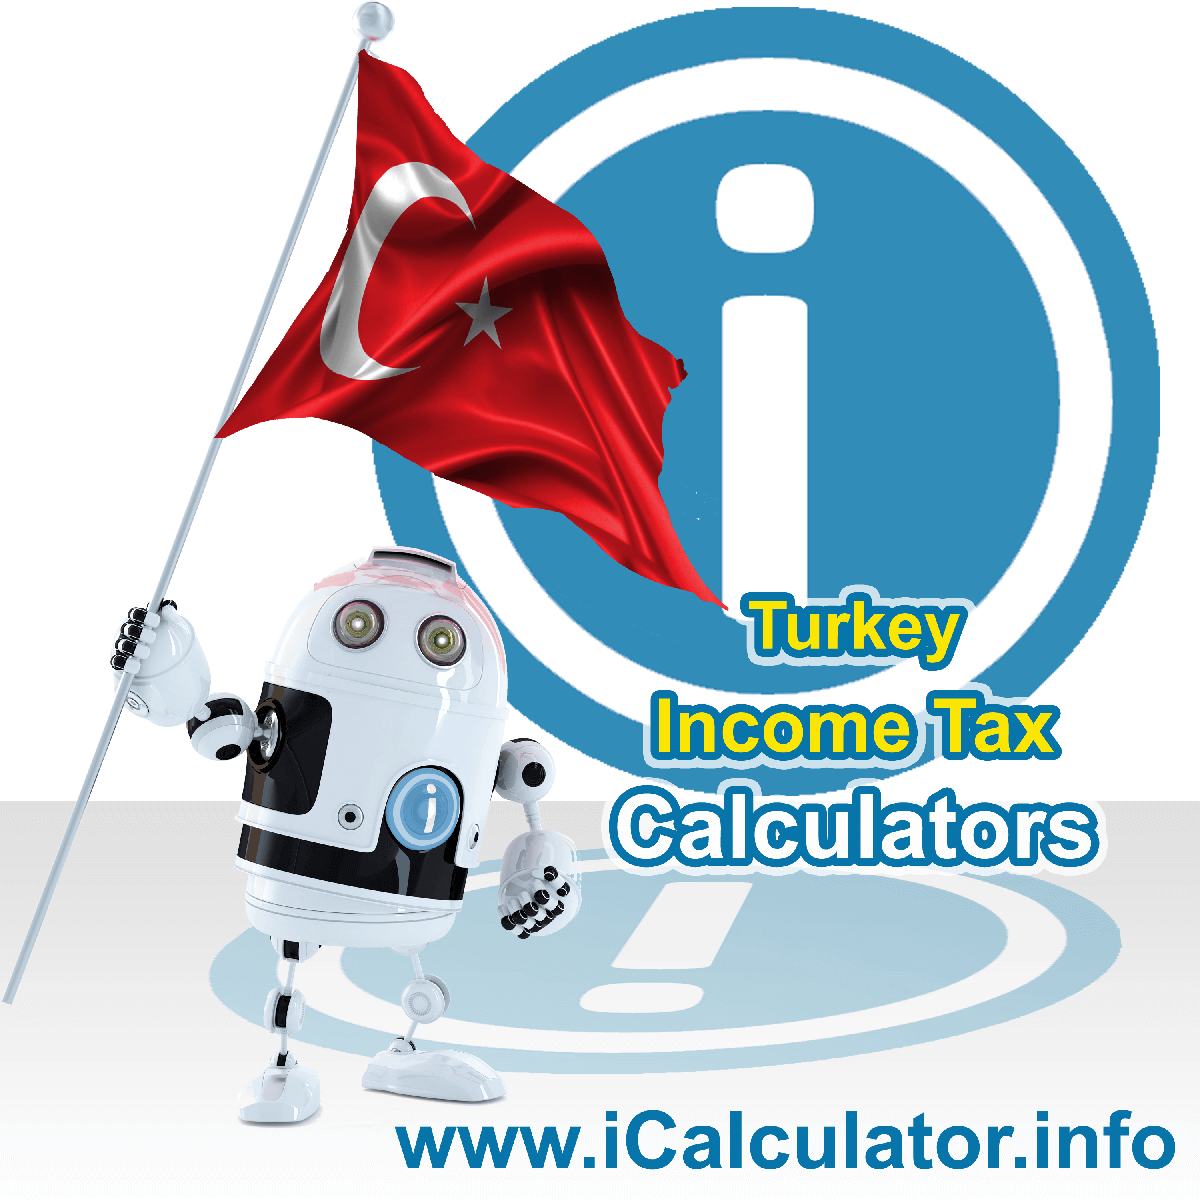 Turkey Income Tax Calculator. This image shows a new employer in Turkey calculating the annual payroll costs based on multiple payroll payments in one year in Turkey using the Turkey income tax calculator to understand their payroll costs in Turkey in 2021